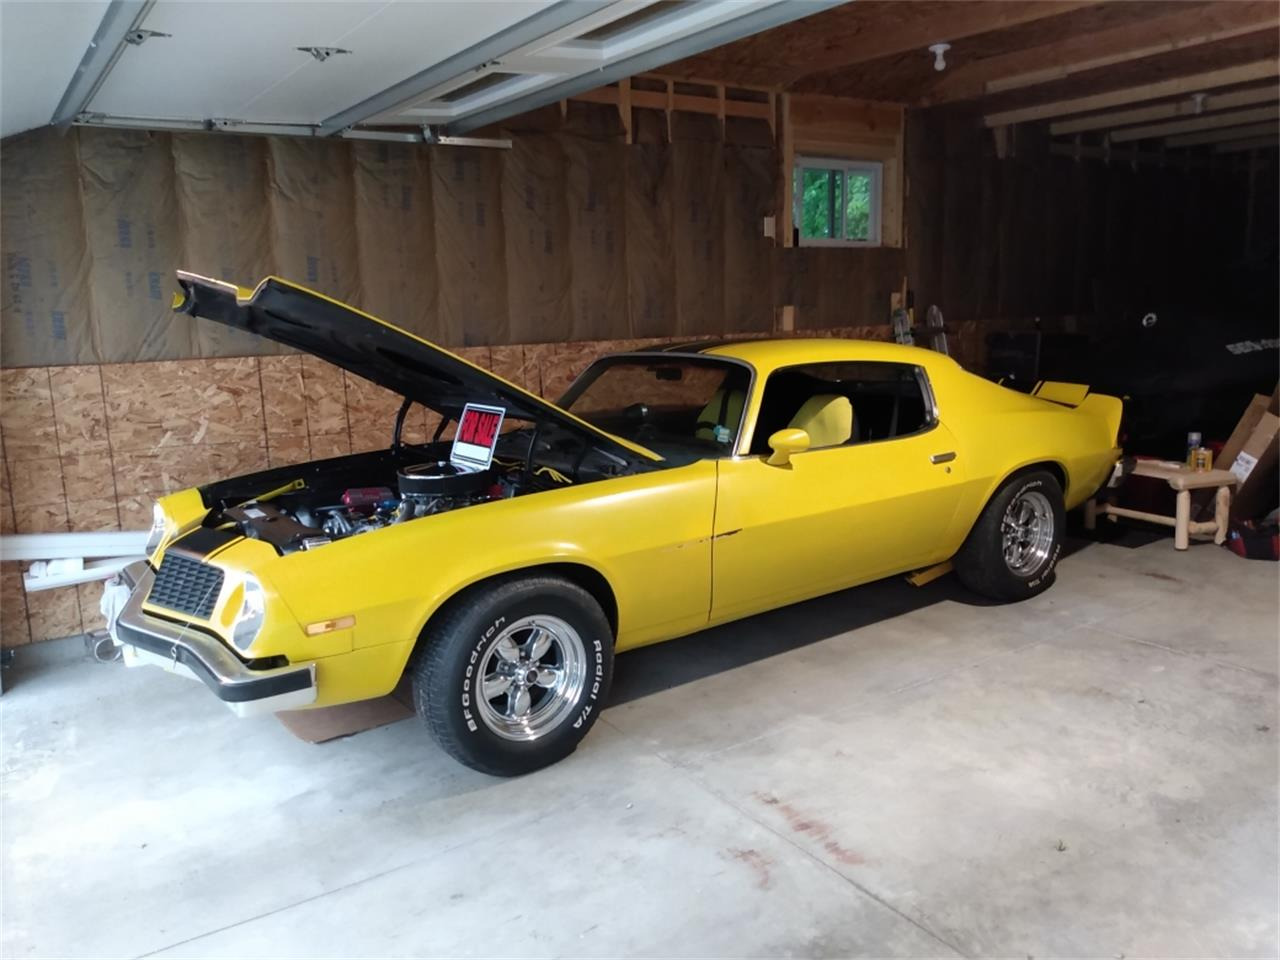 for sale 1974 chevrolet camaro in waukesha, wisconsin cars - waukesha, wi at geebo